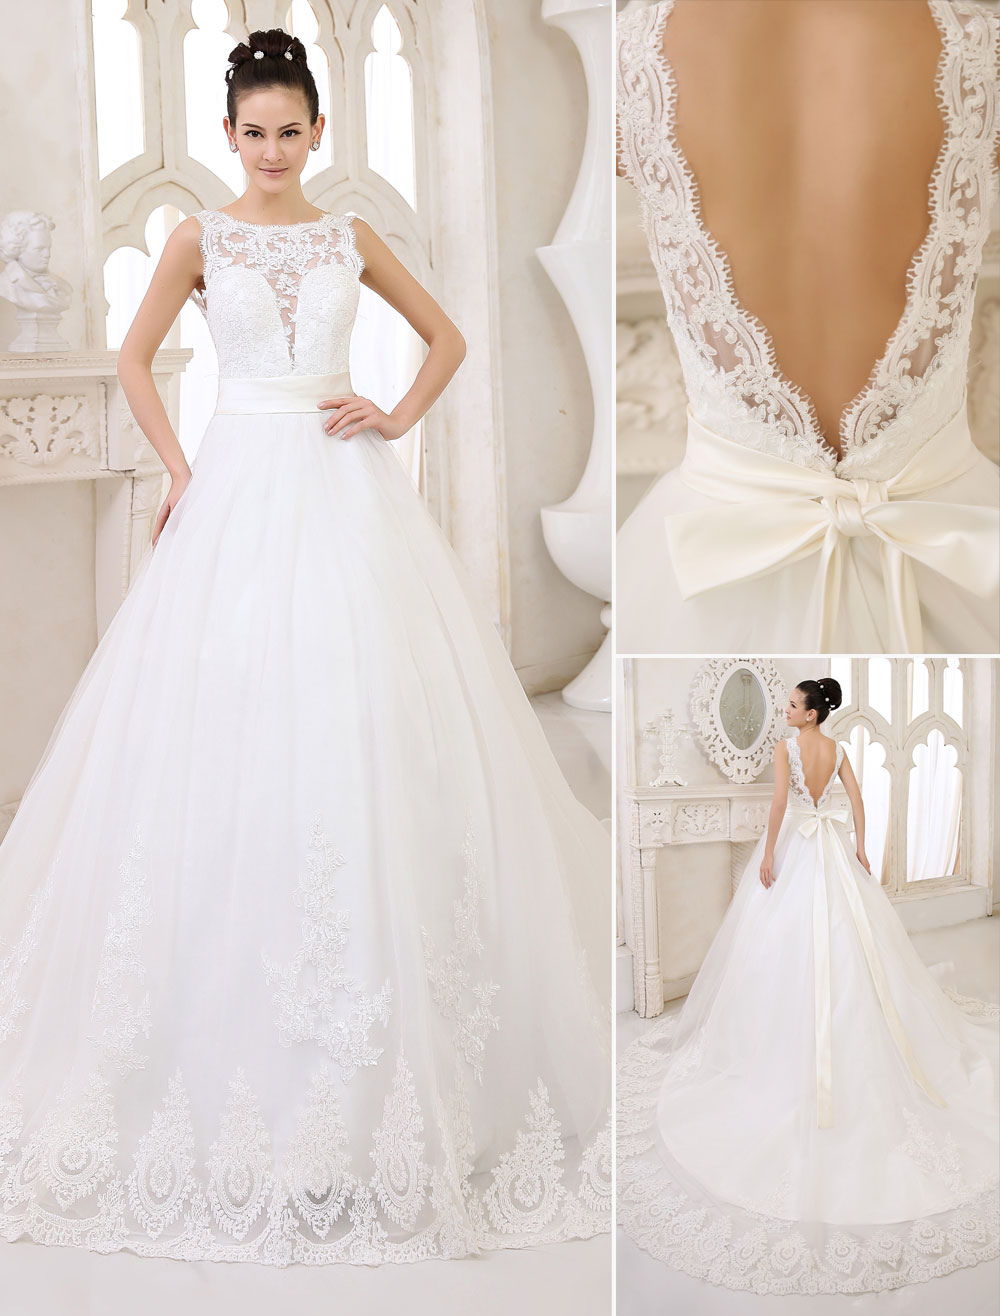 Wedding Dresses Ivory Backless Bridal Gown Lace Applique Ribbon Sash Illusion Chapel Train Wedding Gown Milanoo